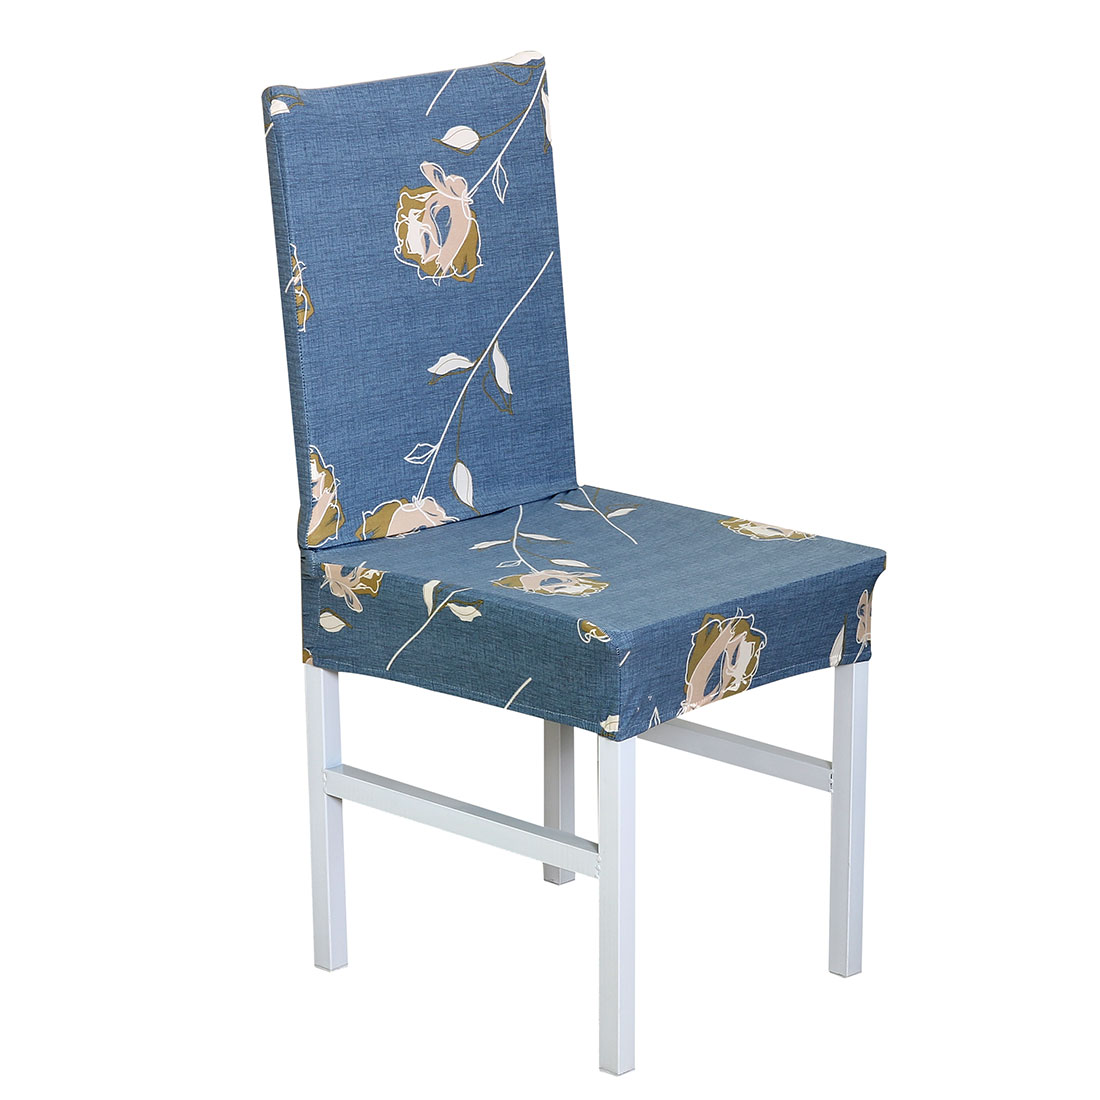 dining room chair covers walmart.ca lifeguard plans sofa & slip covering for home décor   walmart canada